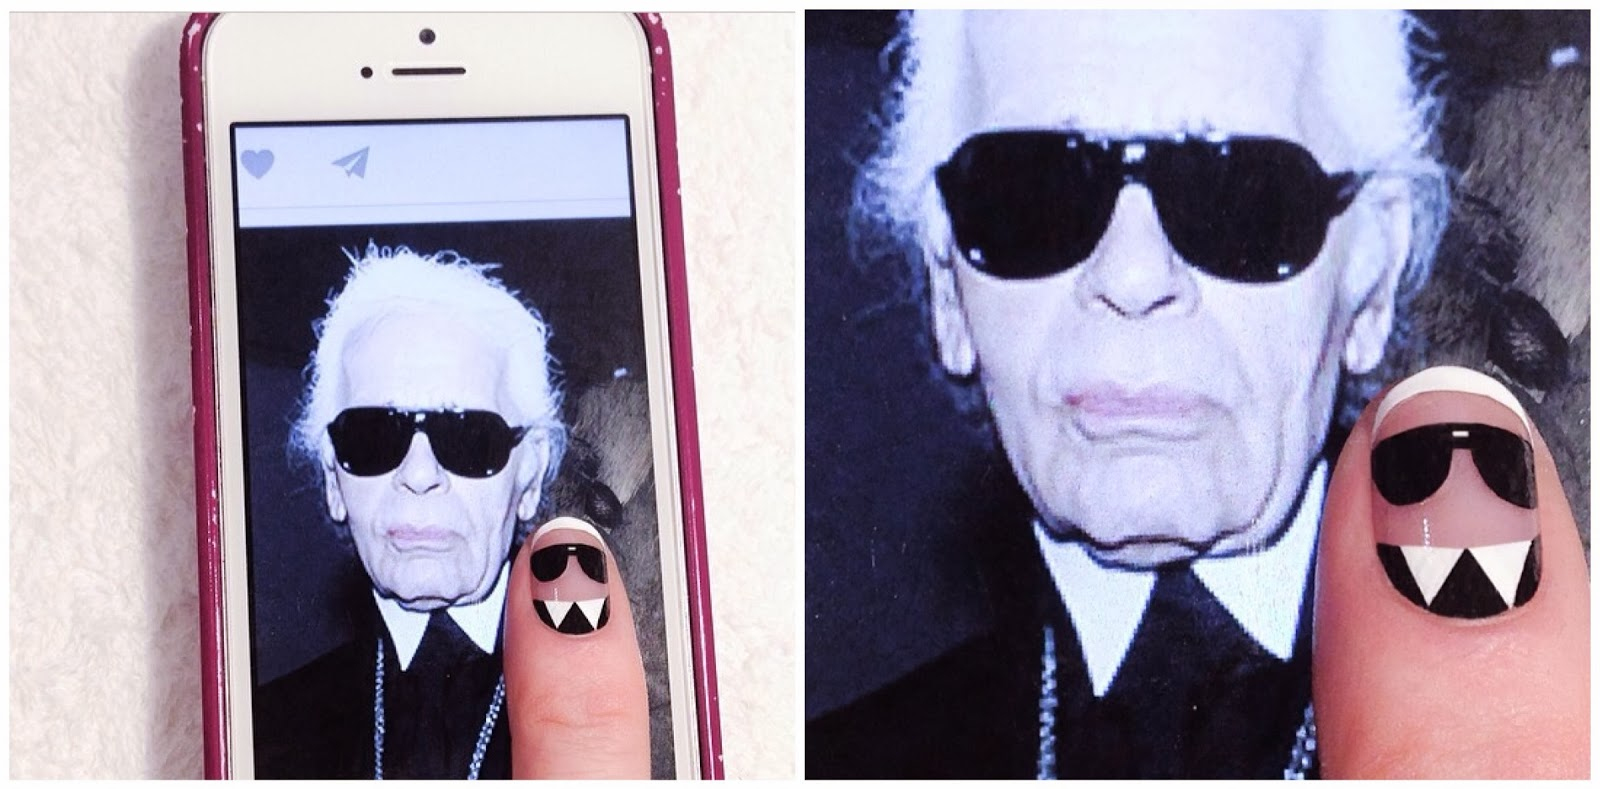 Karl Lagerfeld Nail Art by Madeline Poole.